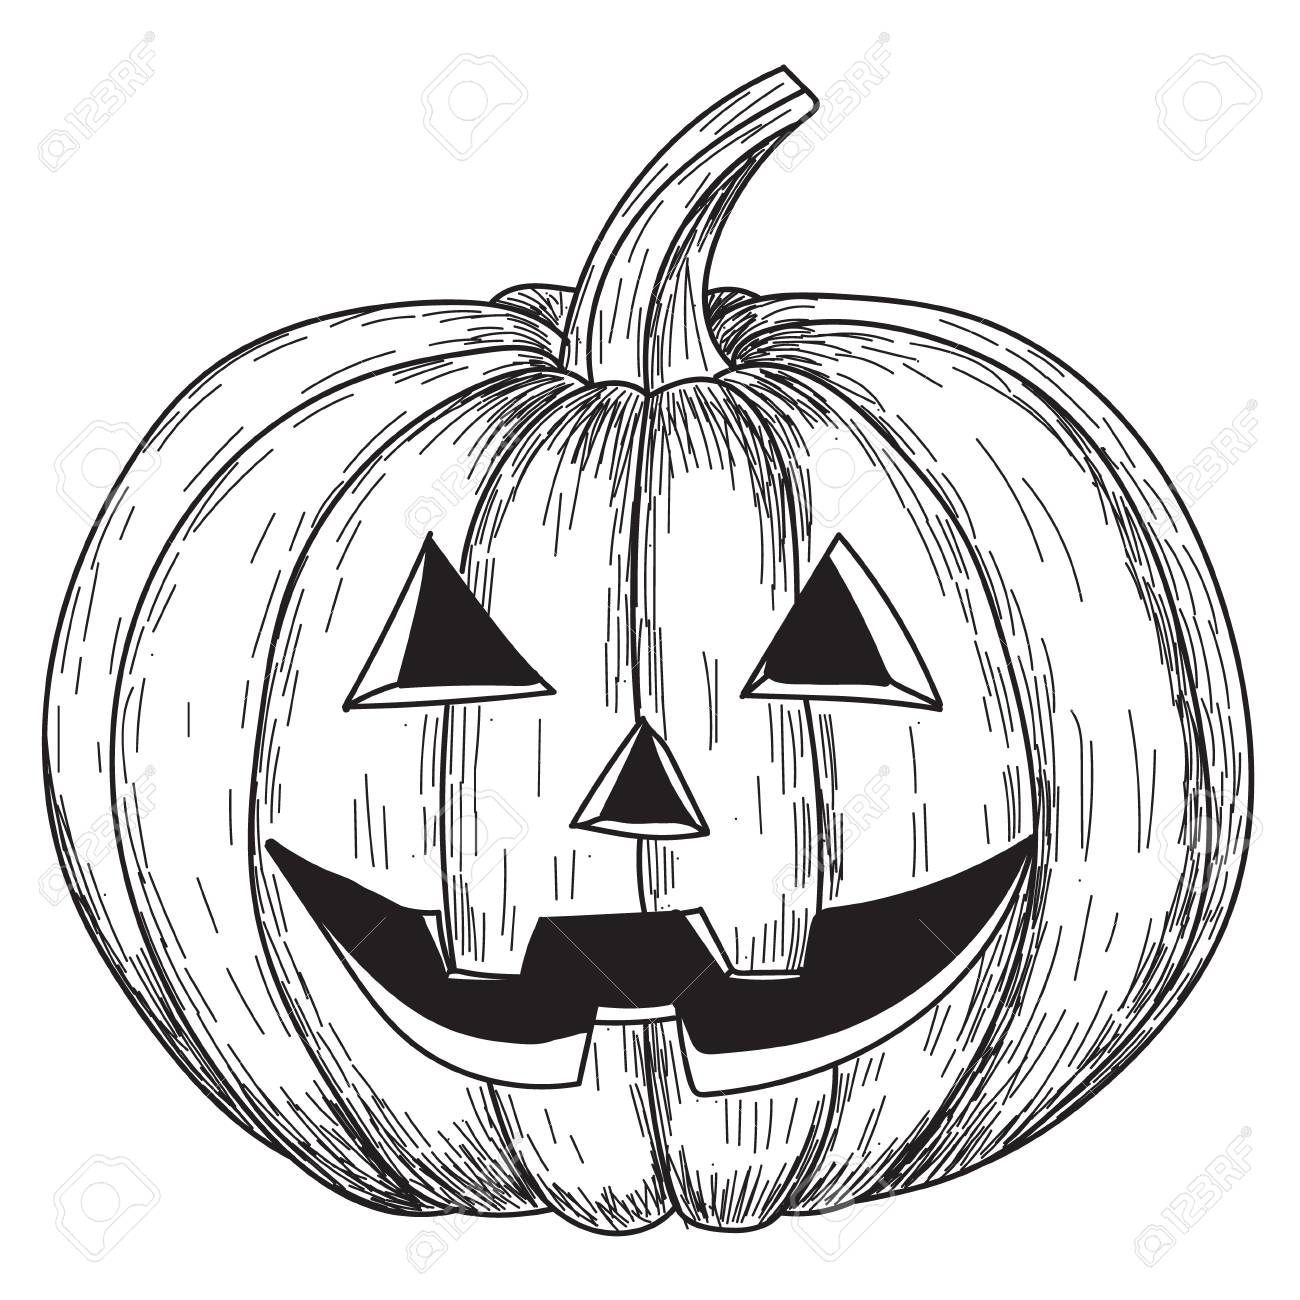 Halloween Pumpkin Drawing Picture.Halloween Pumpkin With Evil Scary Smile In Funny Hand Drawing